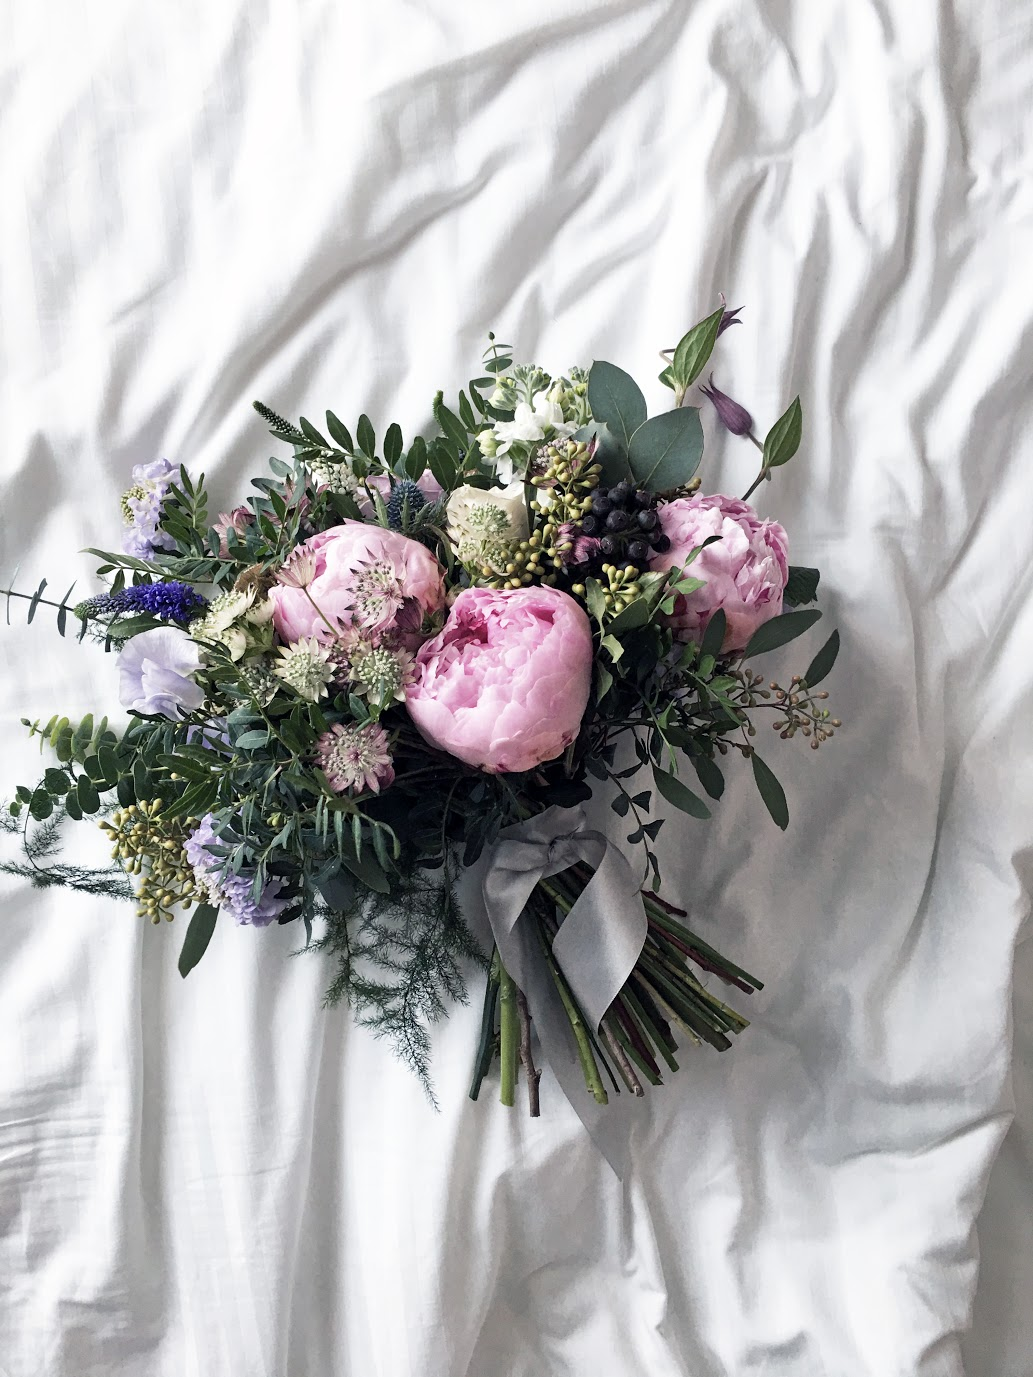 What's in the bouquet - Peonies, sweet peas, spray roses, roses, astrantia, matthiola, veronica, clementis and a whole lot of other filler flowers and foliages that we love.